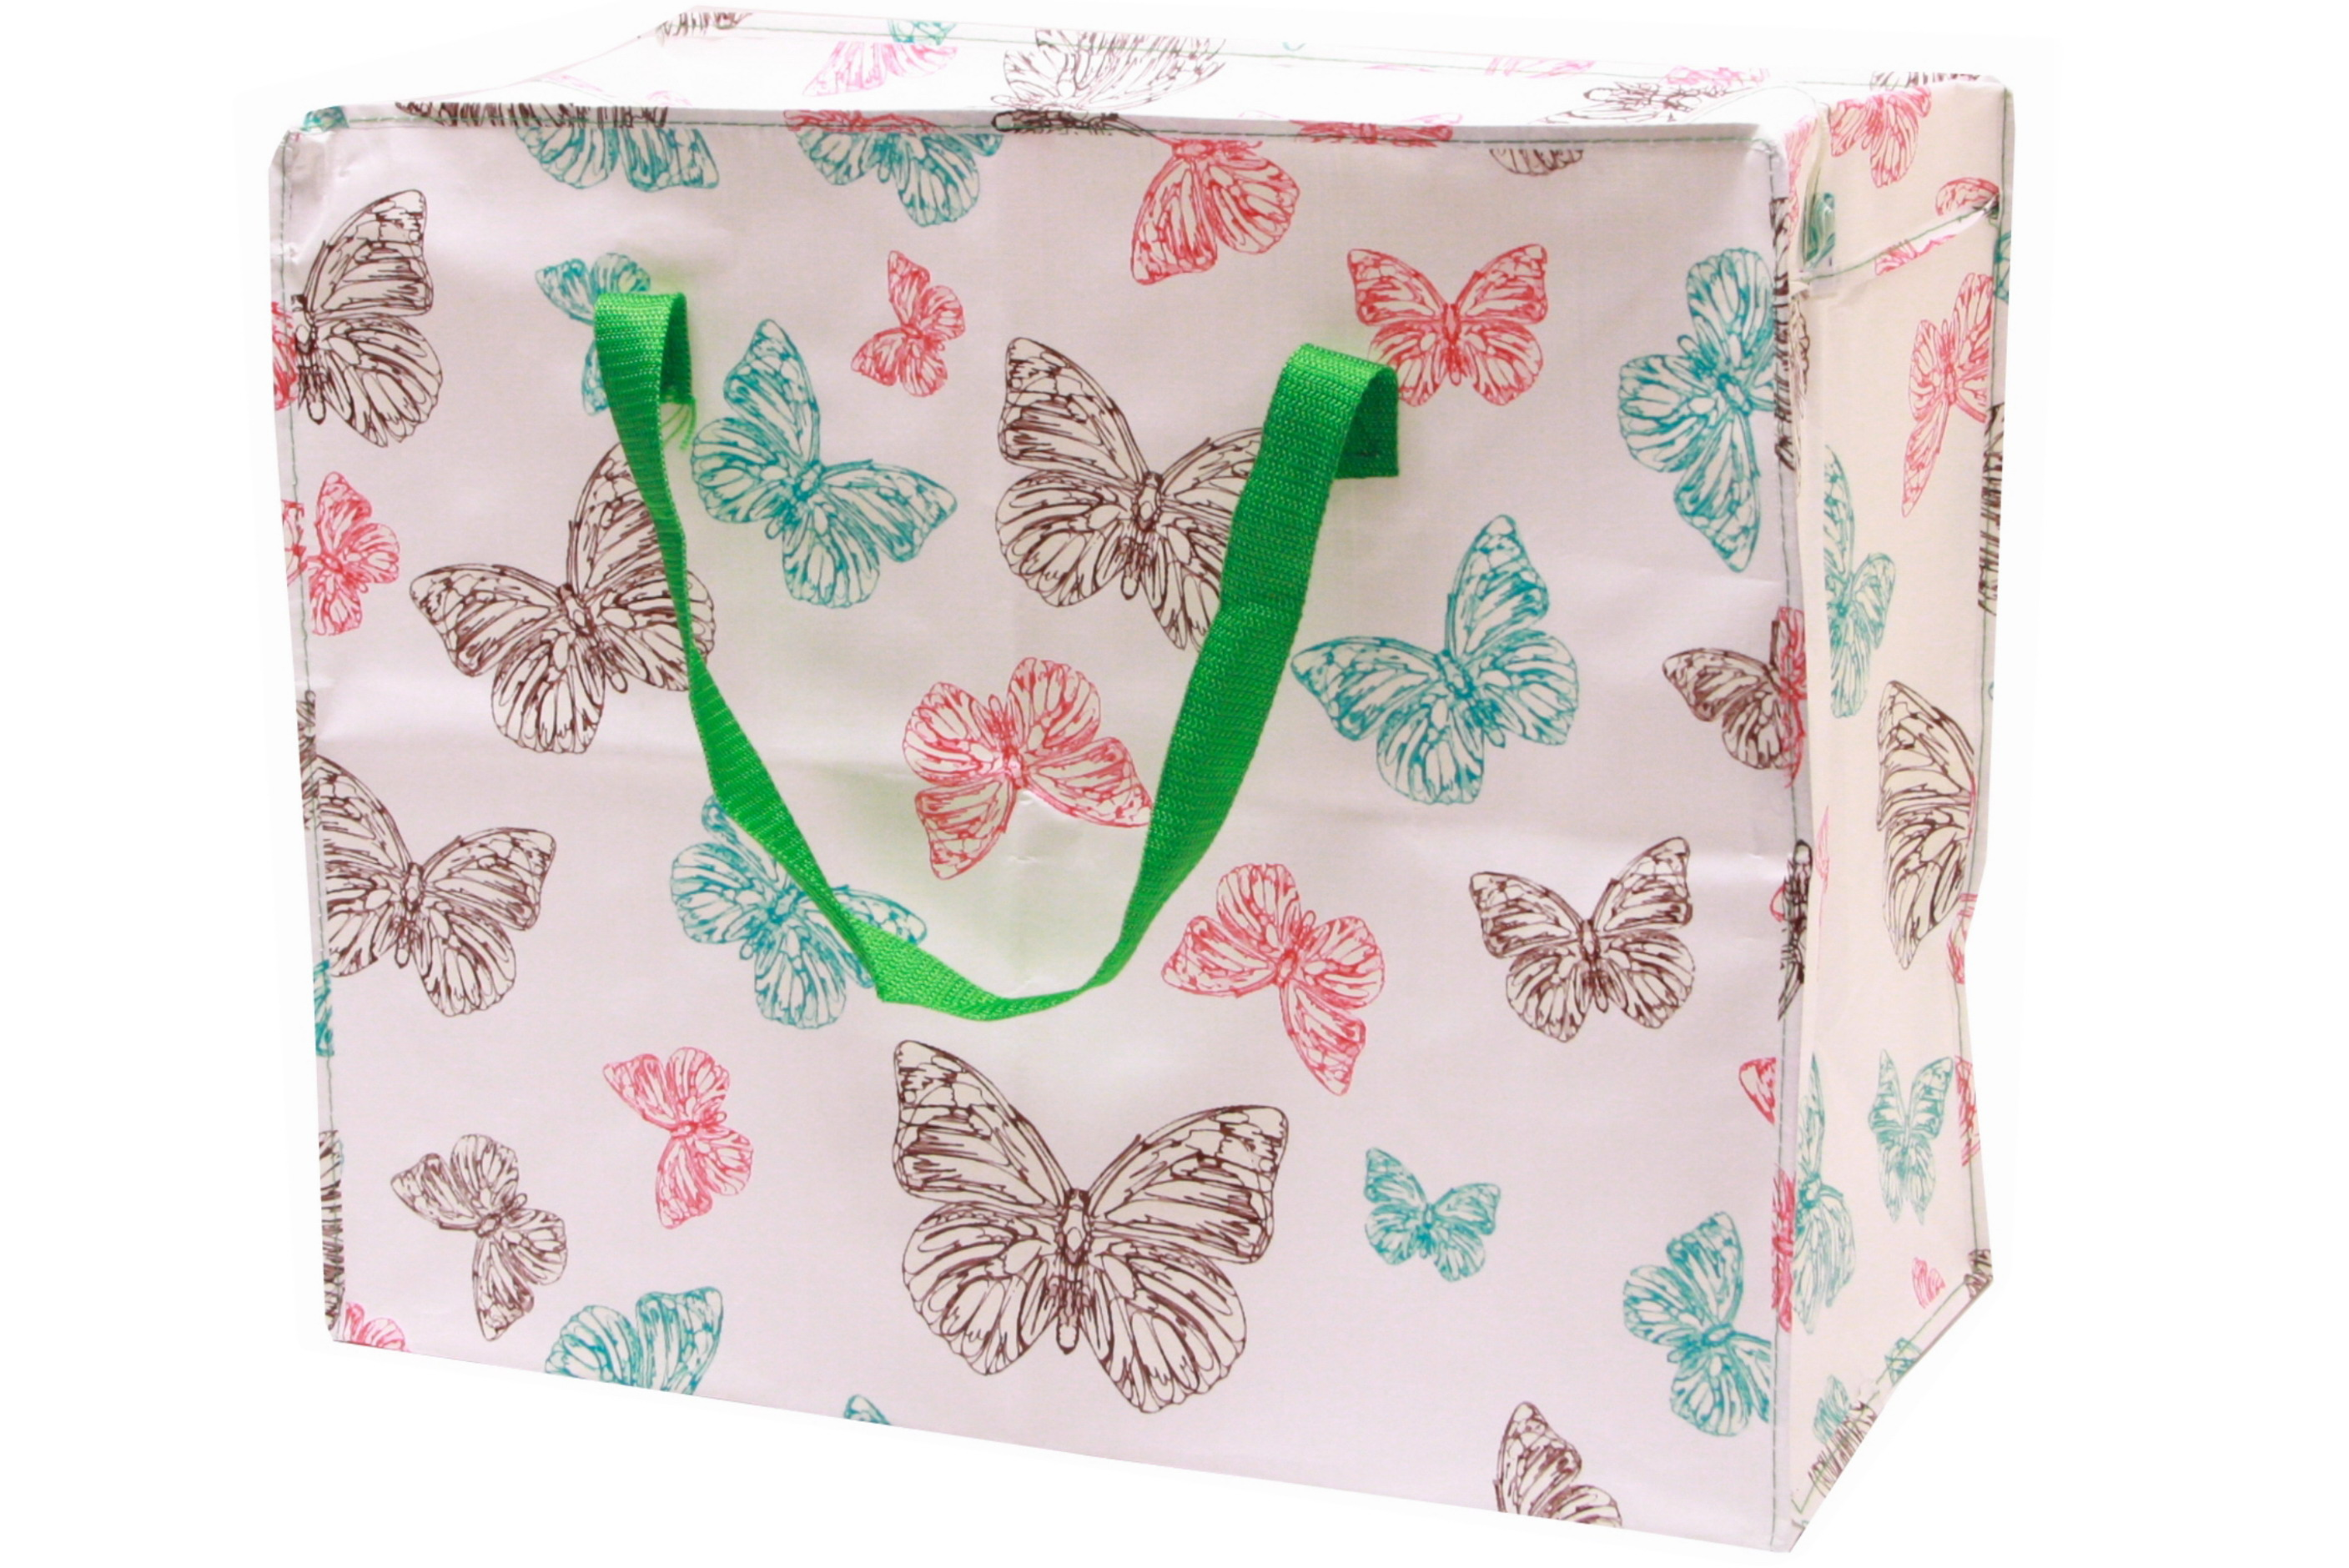 Butterfly Print Shopping Bag 58cm x 48cm x 30cm